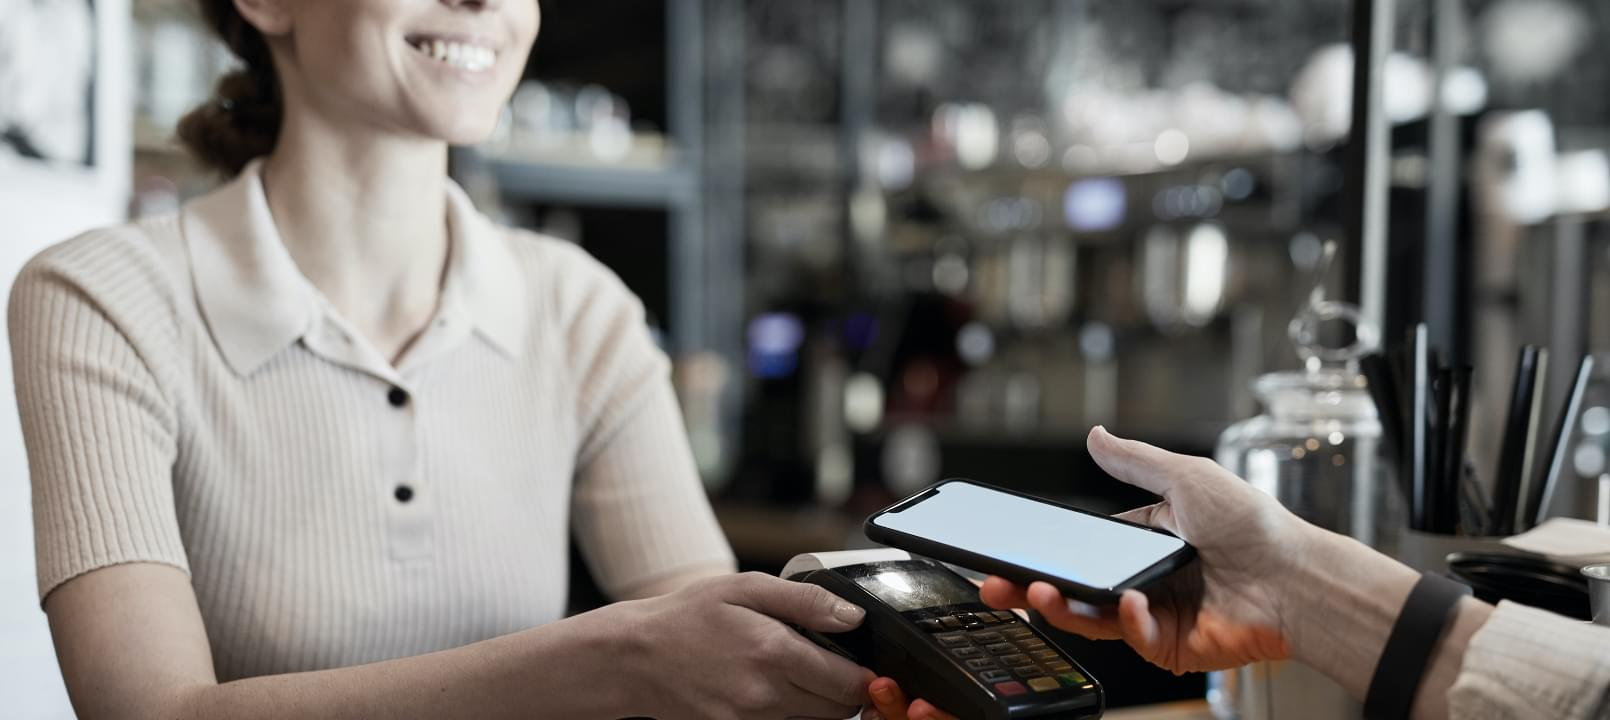 Extends the Life of POS Systems